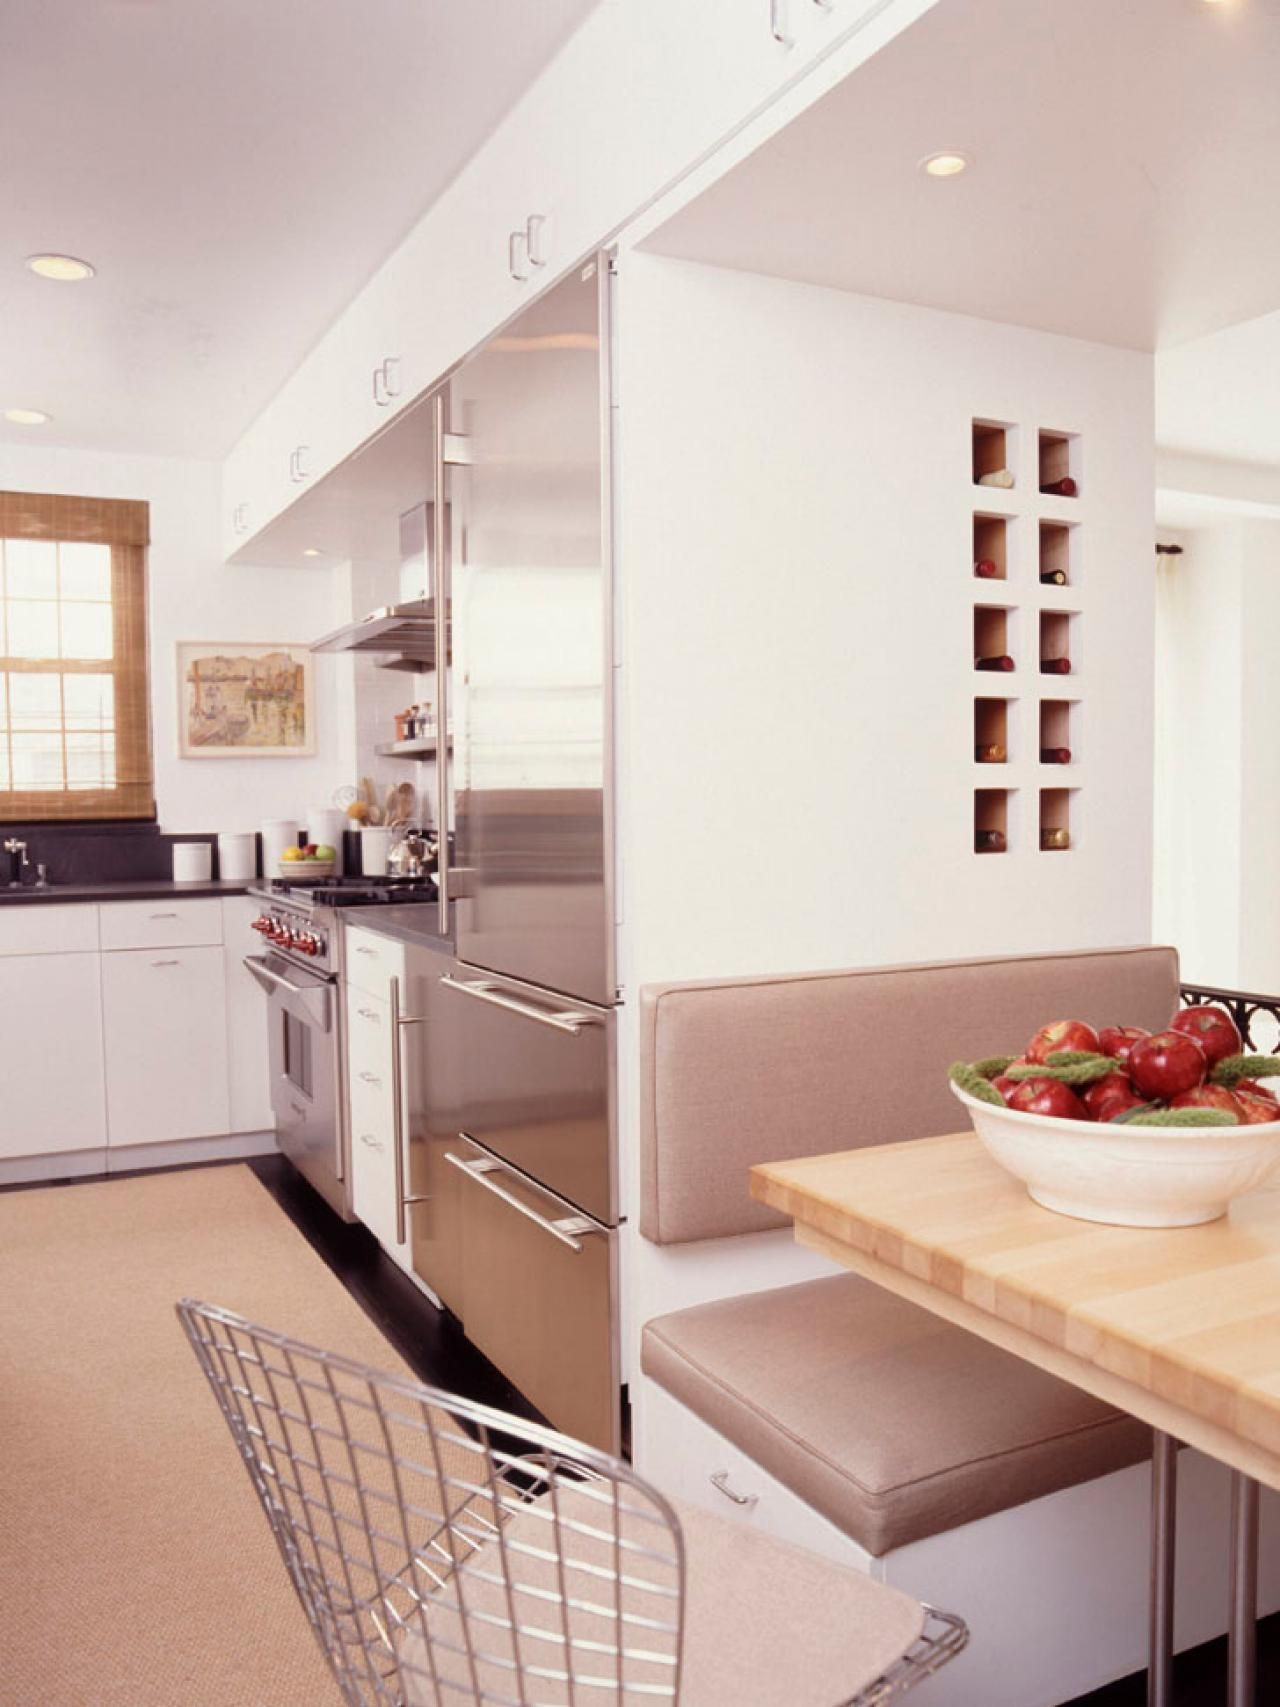 Creating a Family Friendly Kitchen